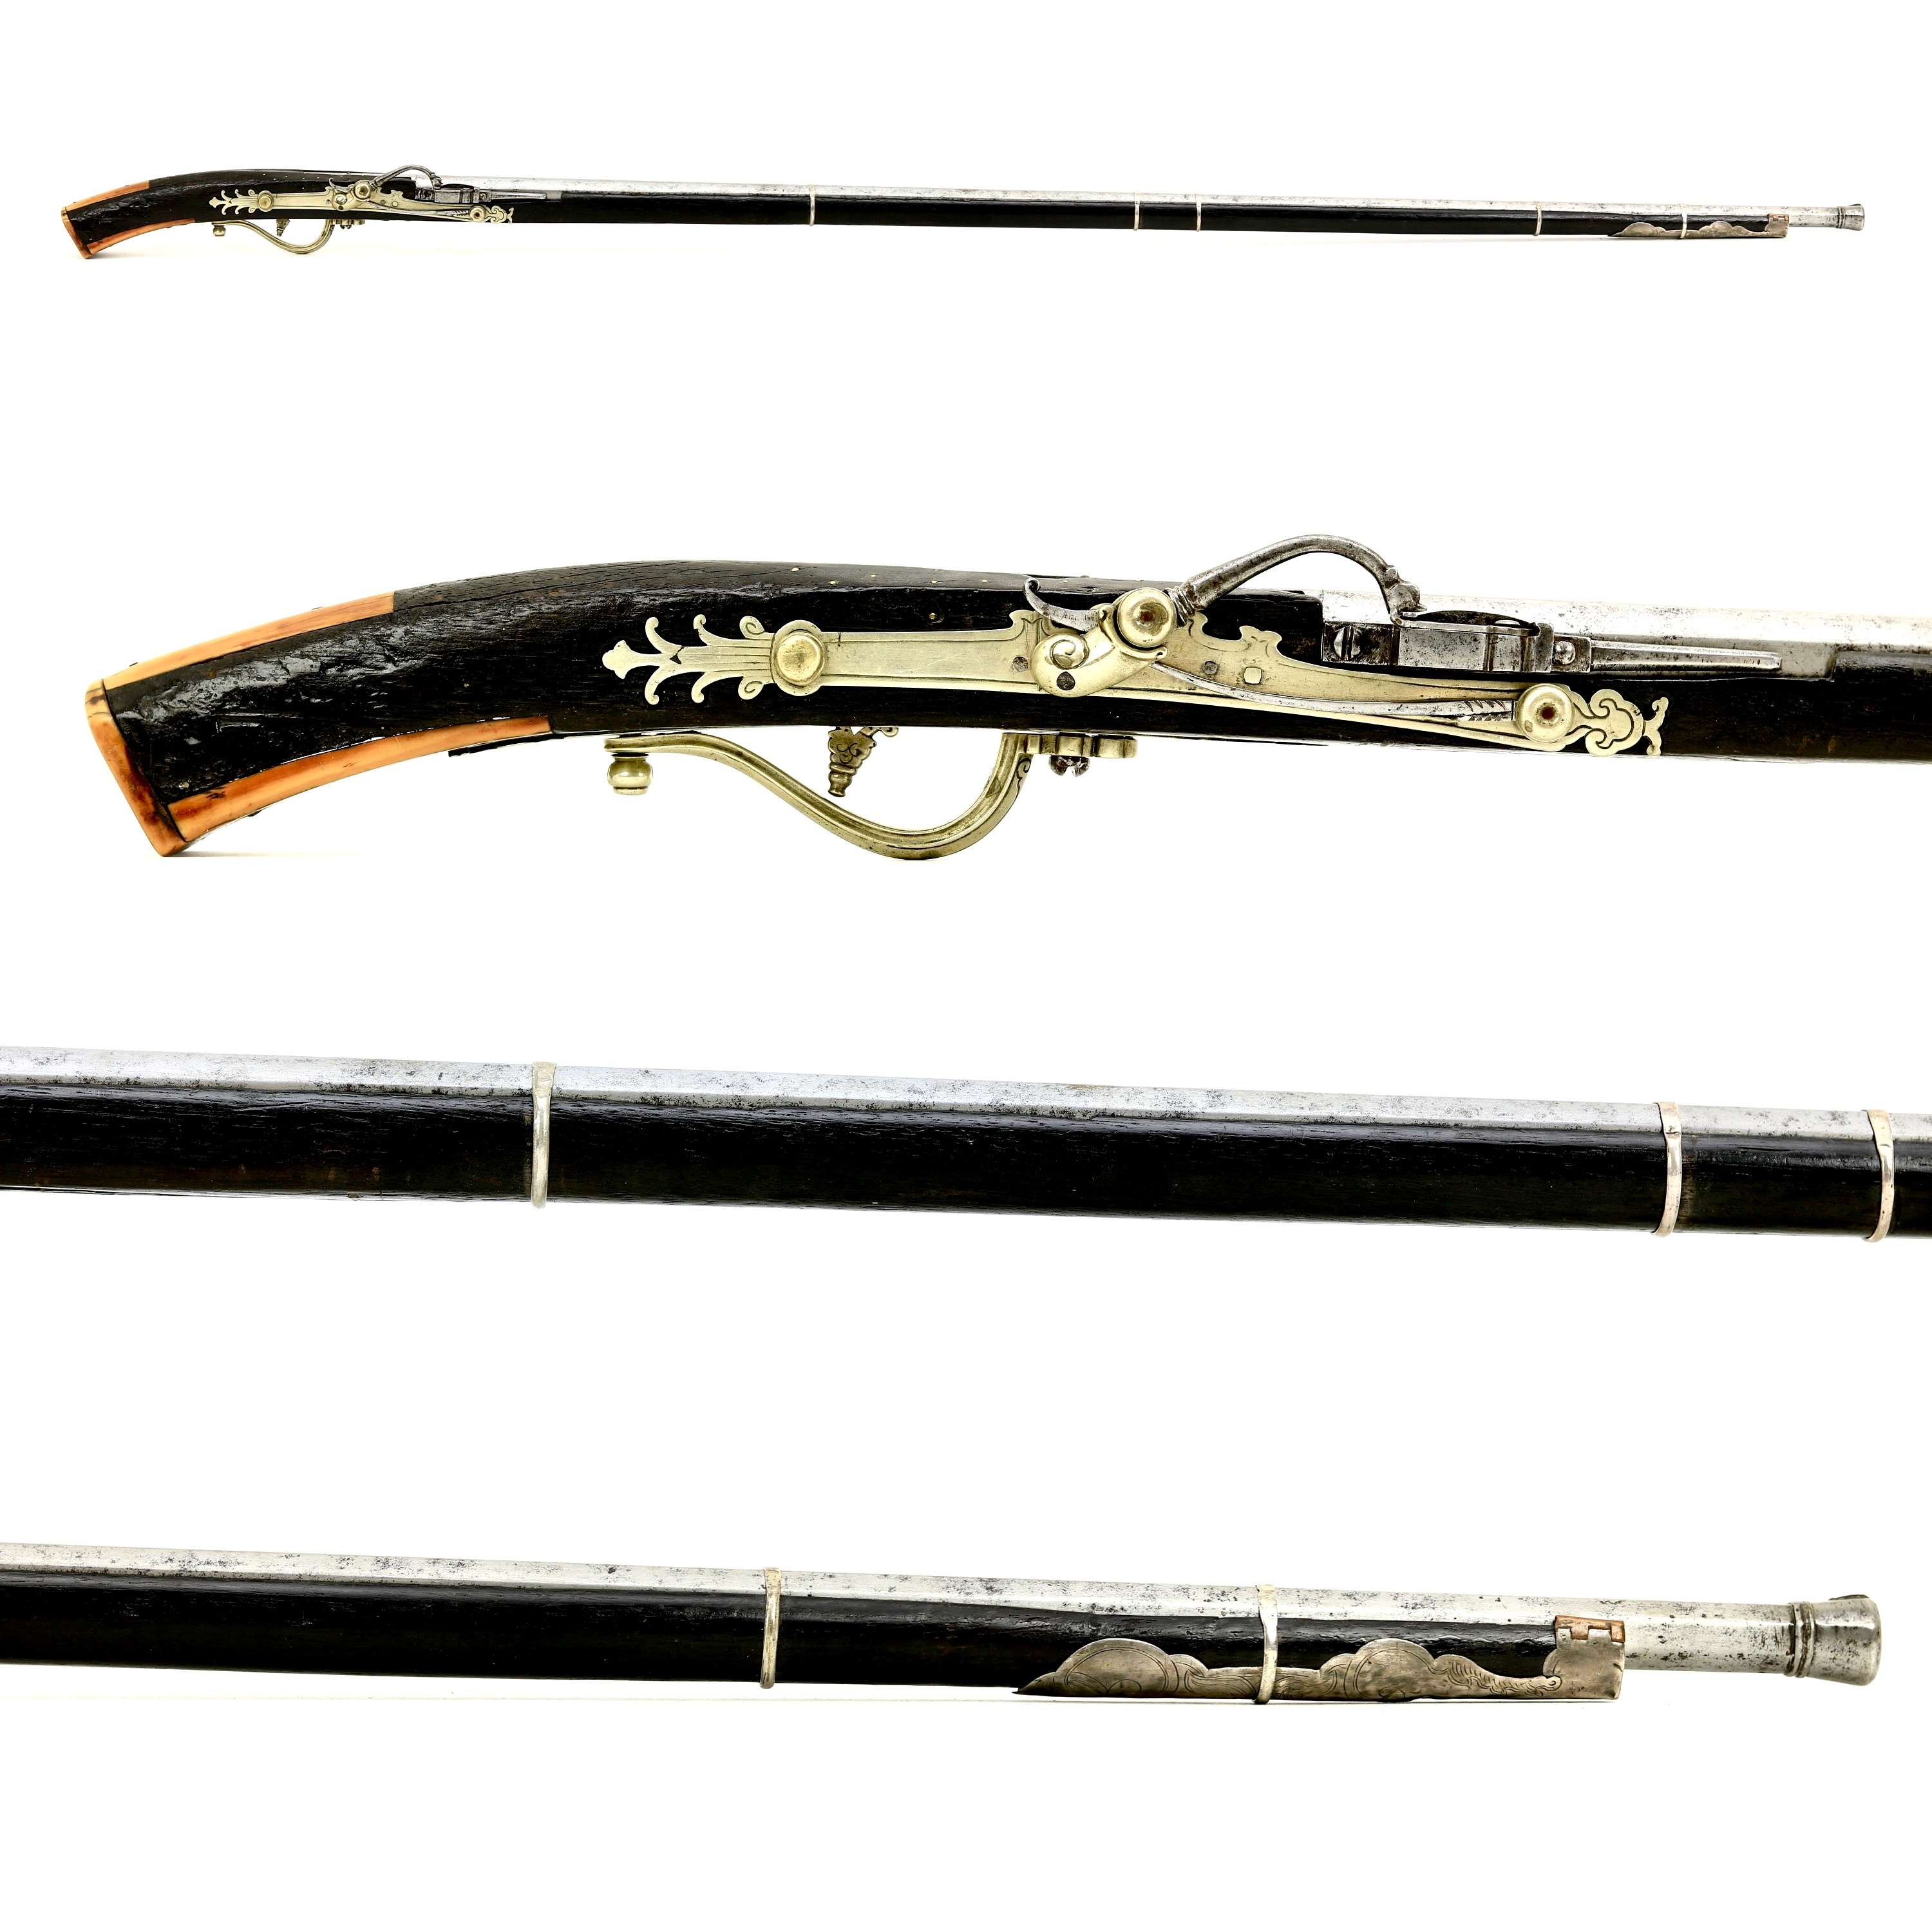 Vietnamese matchlock musket with baitong lock